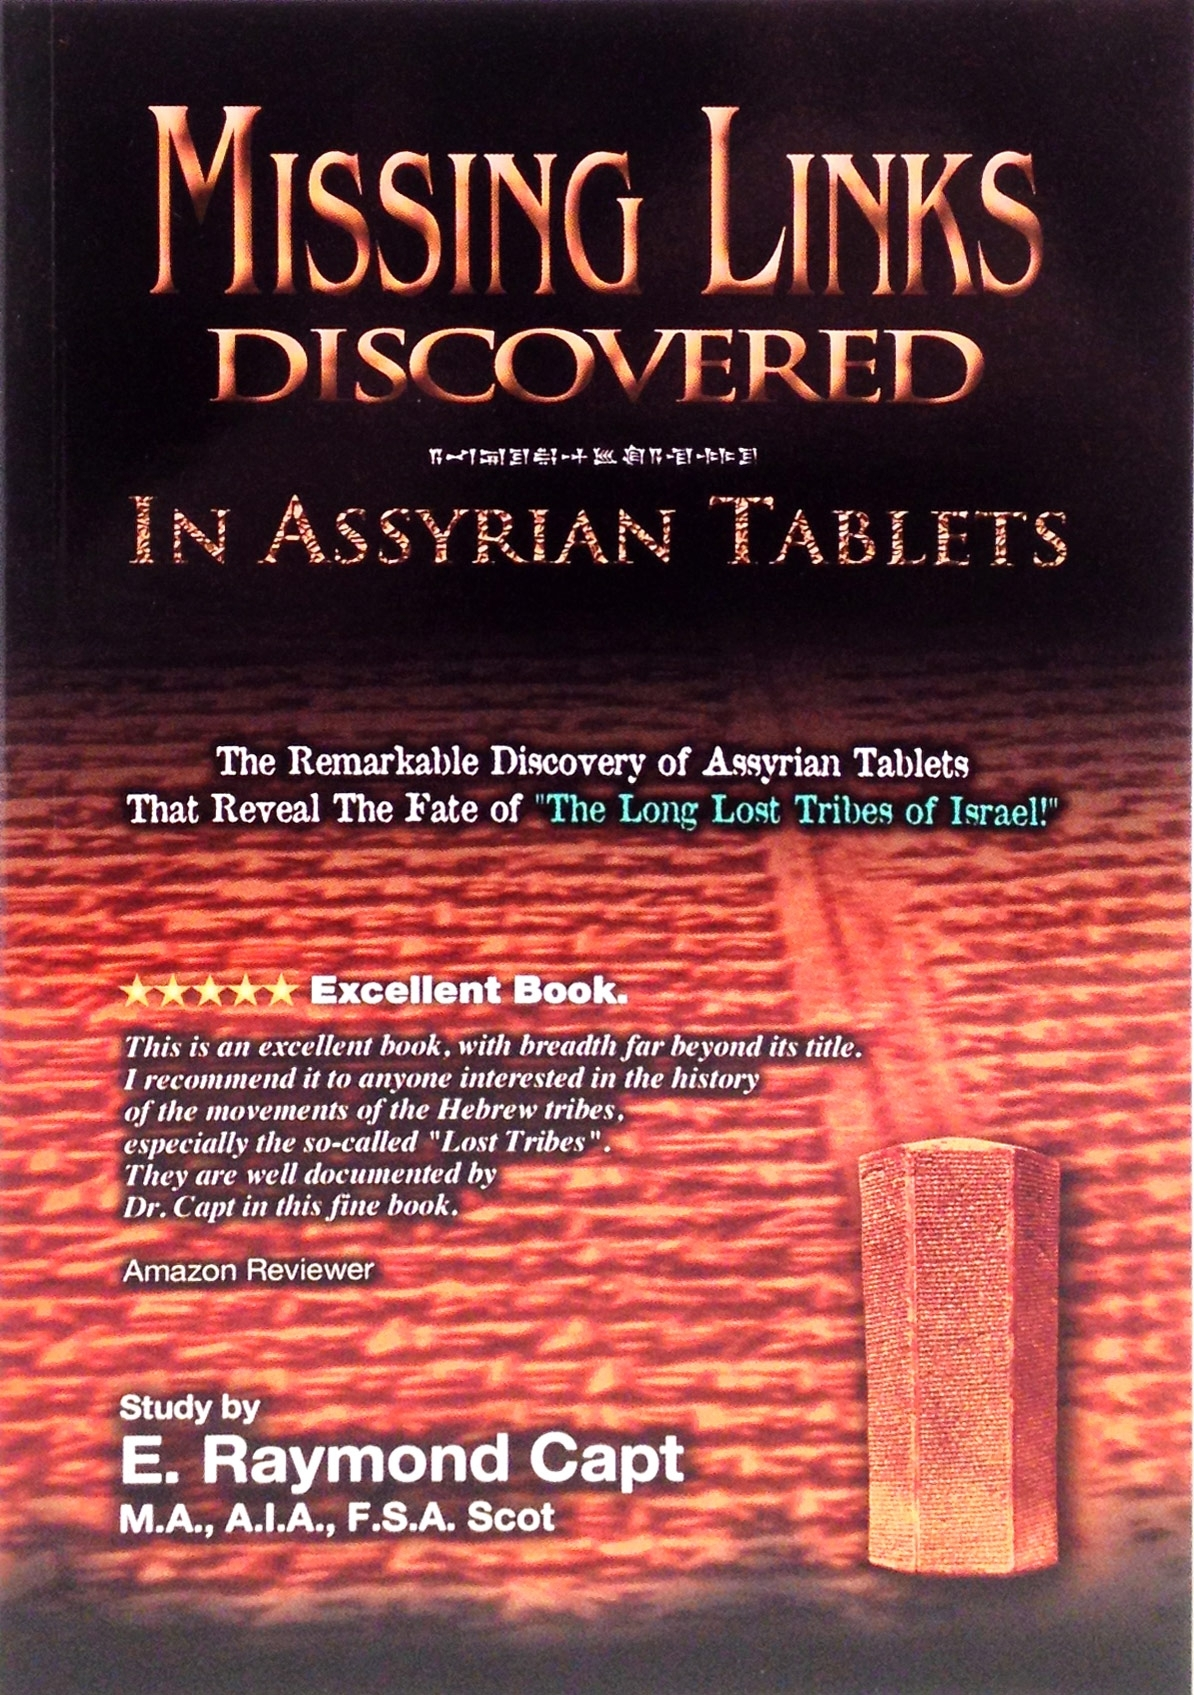 Missing Links Discovered In Assyrian Tablets [Capt] ***THE BEST BOOK - Lost Tribes! [Kindle Available]